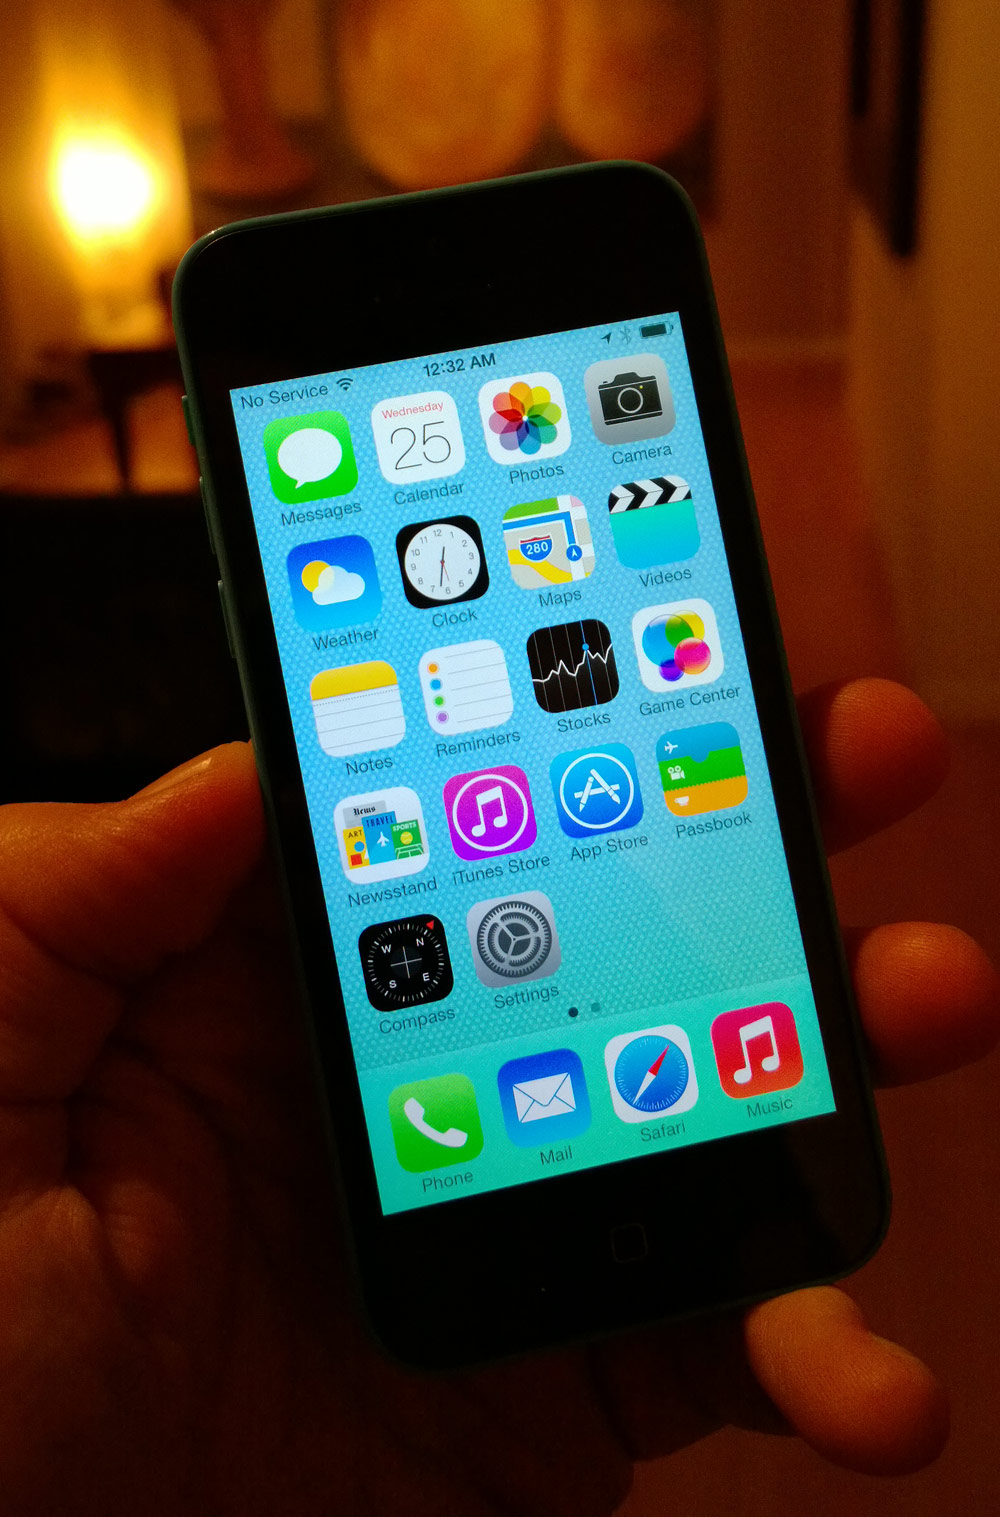 Iphone 5c The Much Overlooked Jewel In Apple S Newly